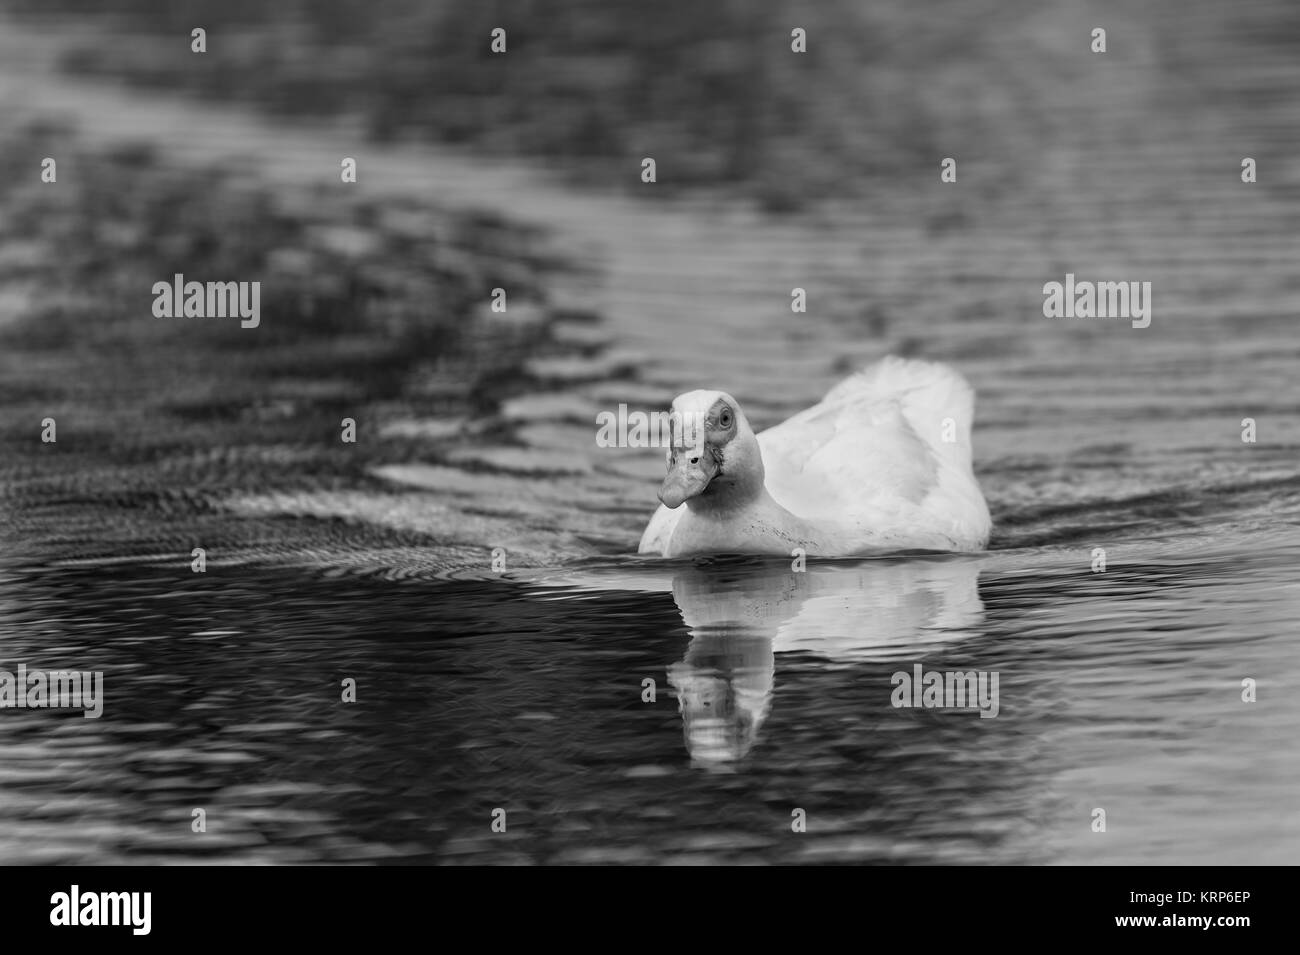 Photo of a duck in its natural environment, converted to black and white. - Stock Image